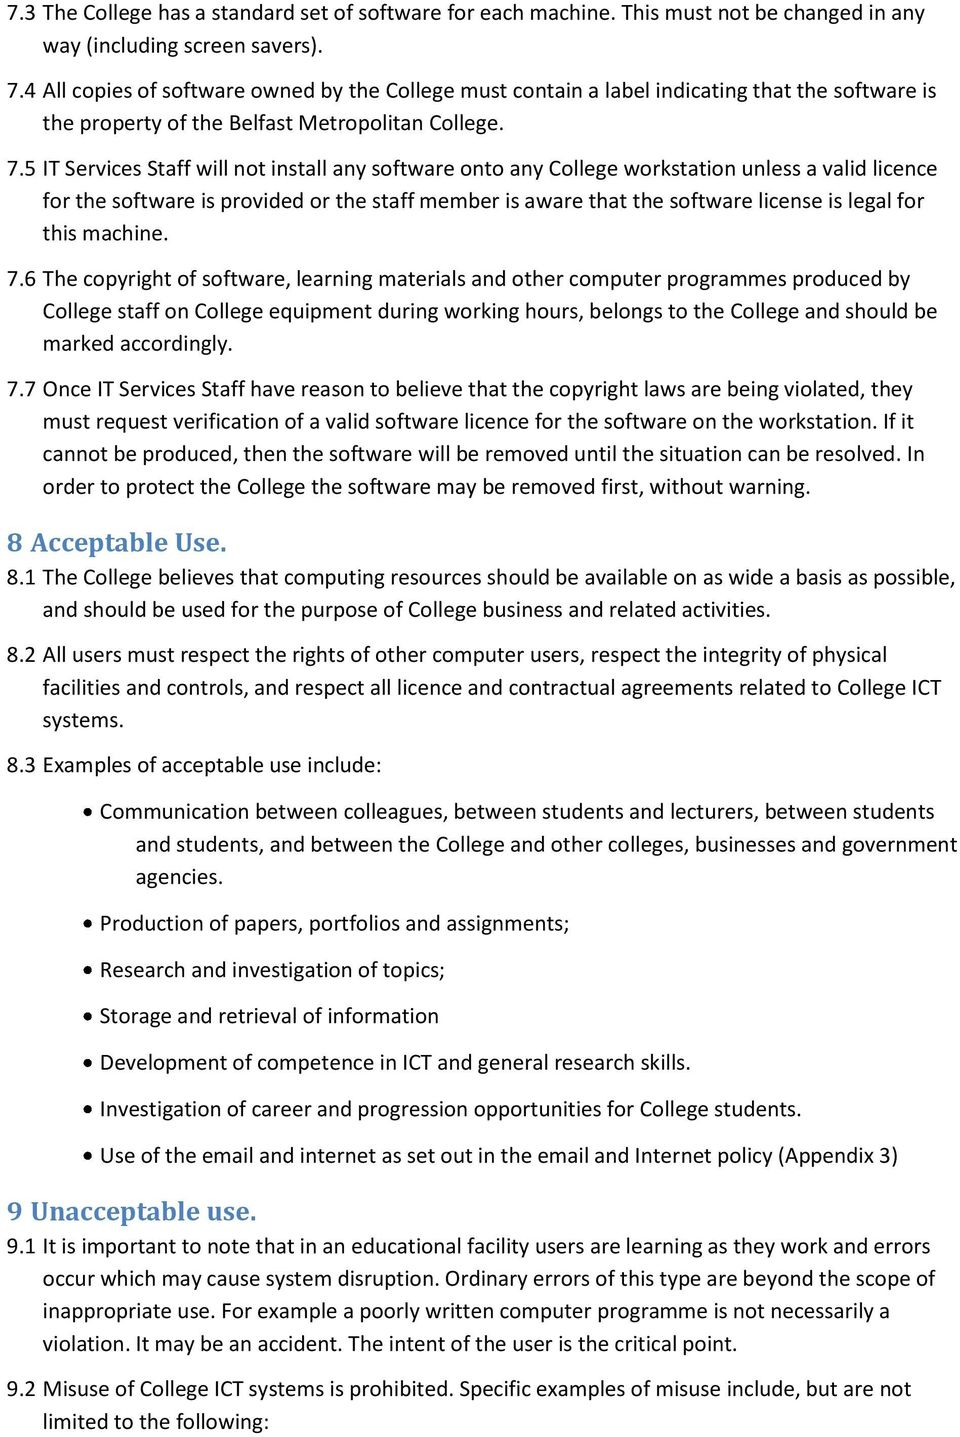 5 IT Services Staff will not install any software onto any College workstation unless a valid licence for the software is provided or the staff member is aware that the software license is legal for